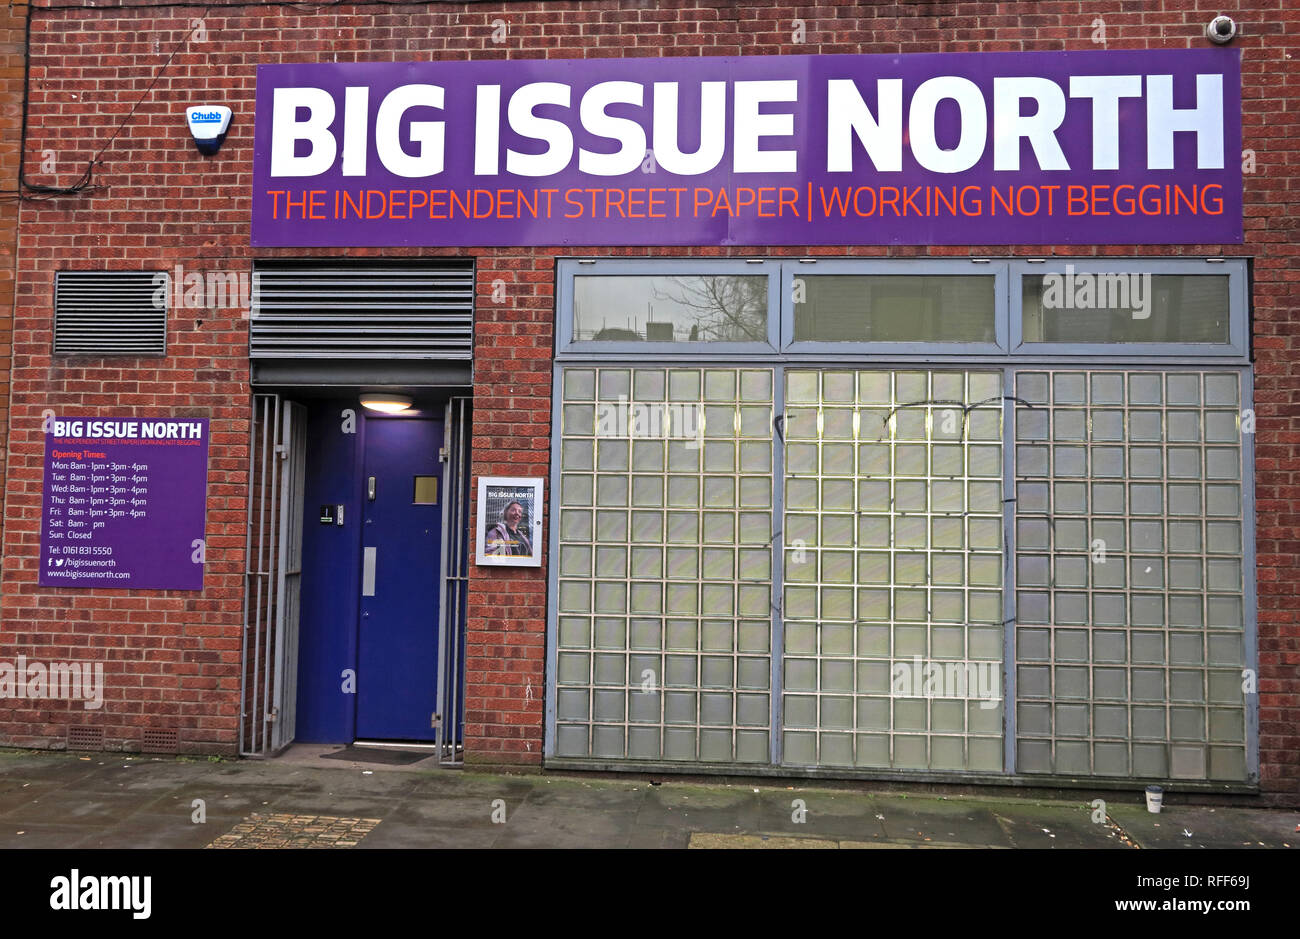 Big Issue North office, 116 Tib Street, NQ, Manchester, England, UK, M4 1LR - Stock Image